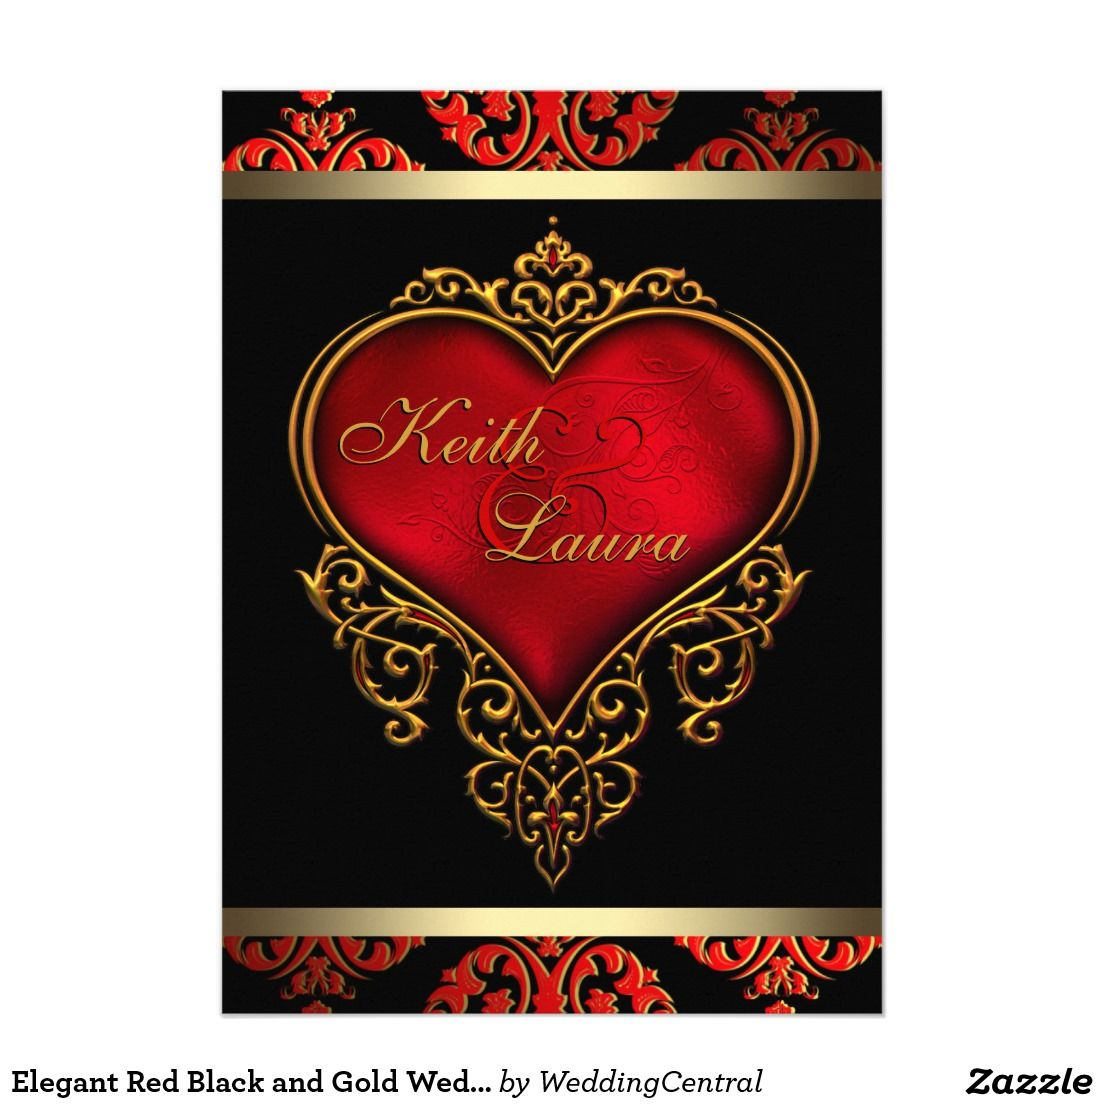 Elegant Red Black and Gold Wedding Card | Gold weddings, Wedding ...